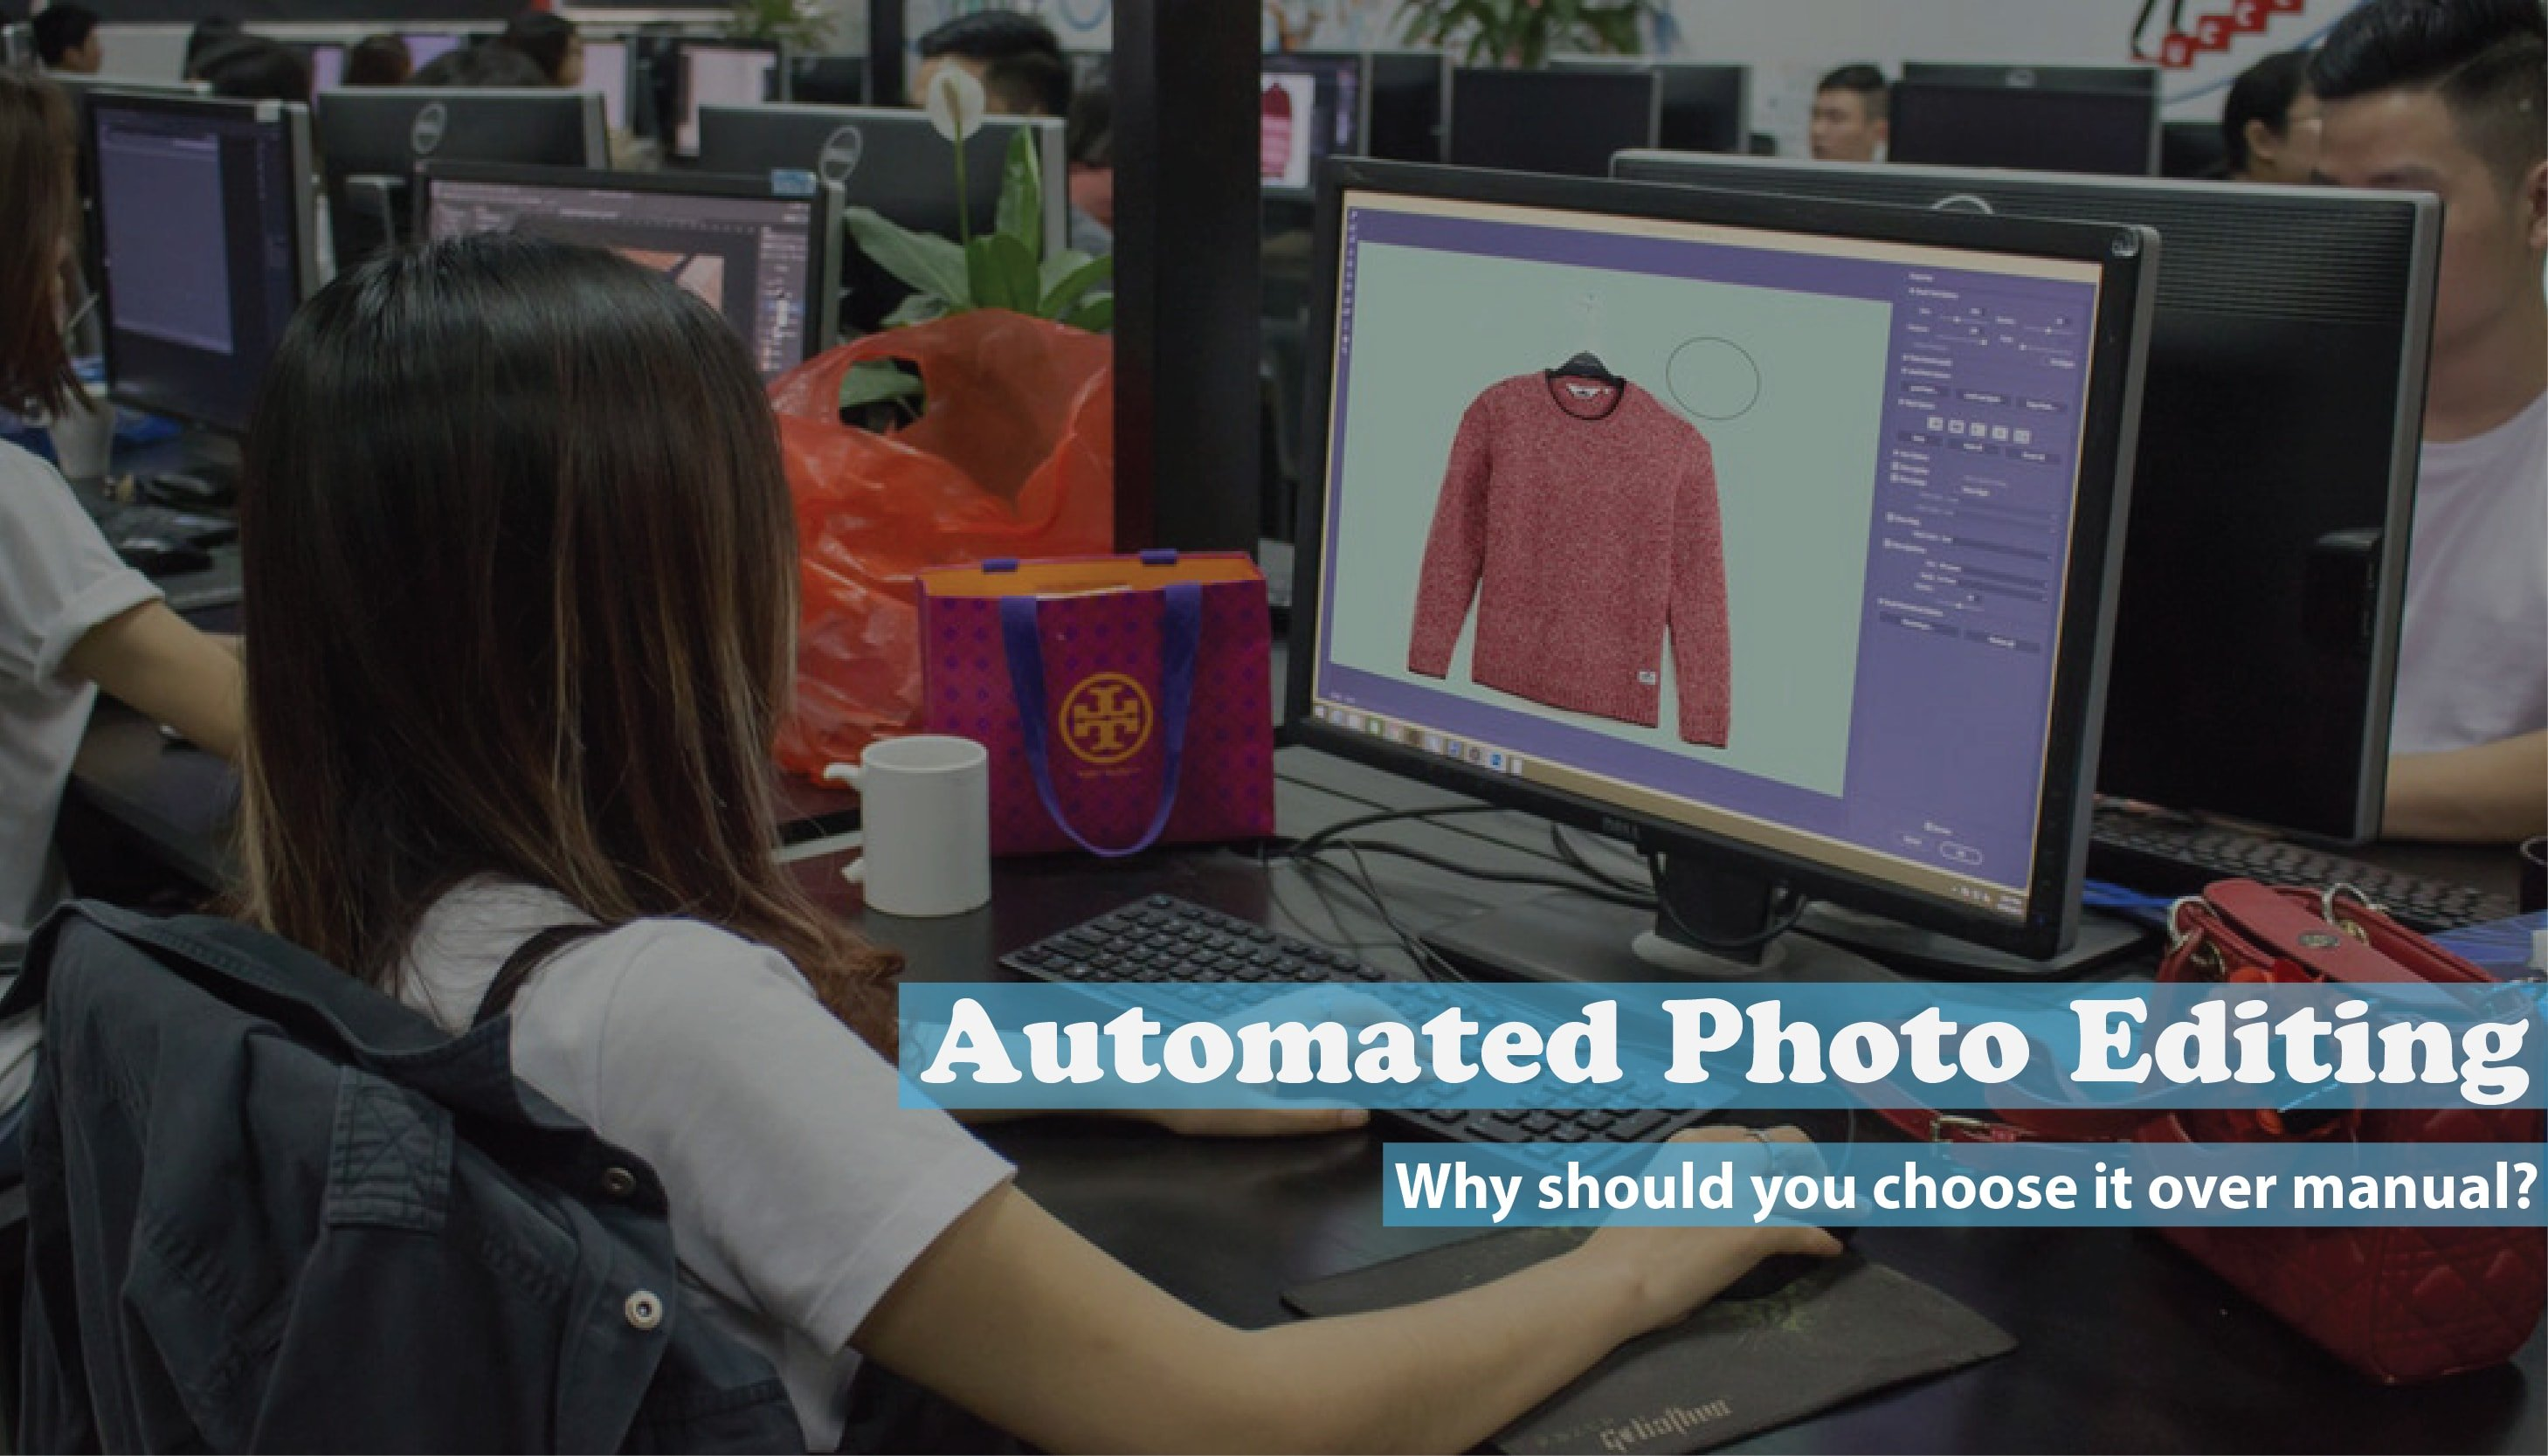 Automated Photo Editing - Why should you choose it over manual editing?